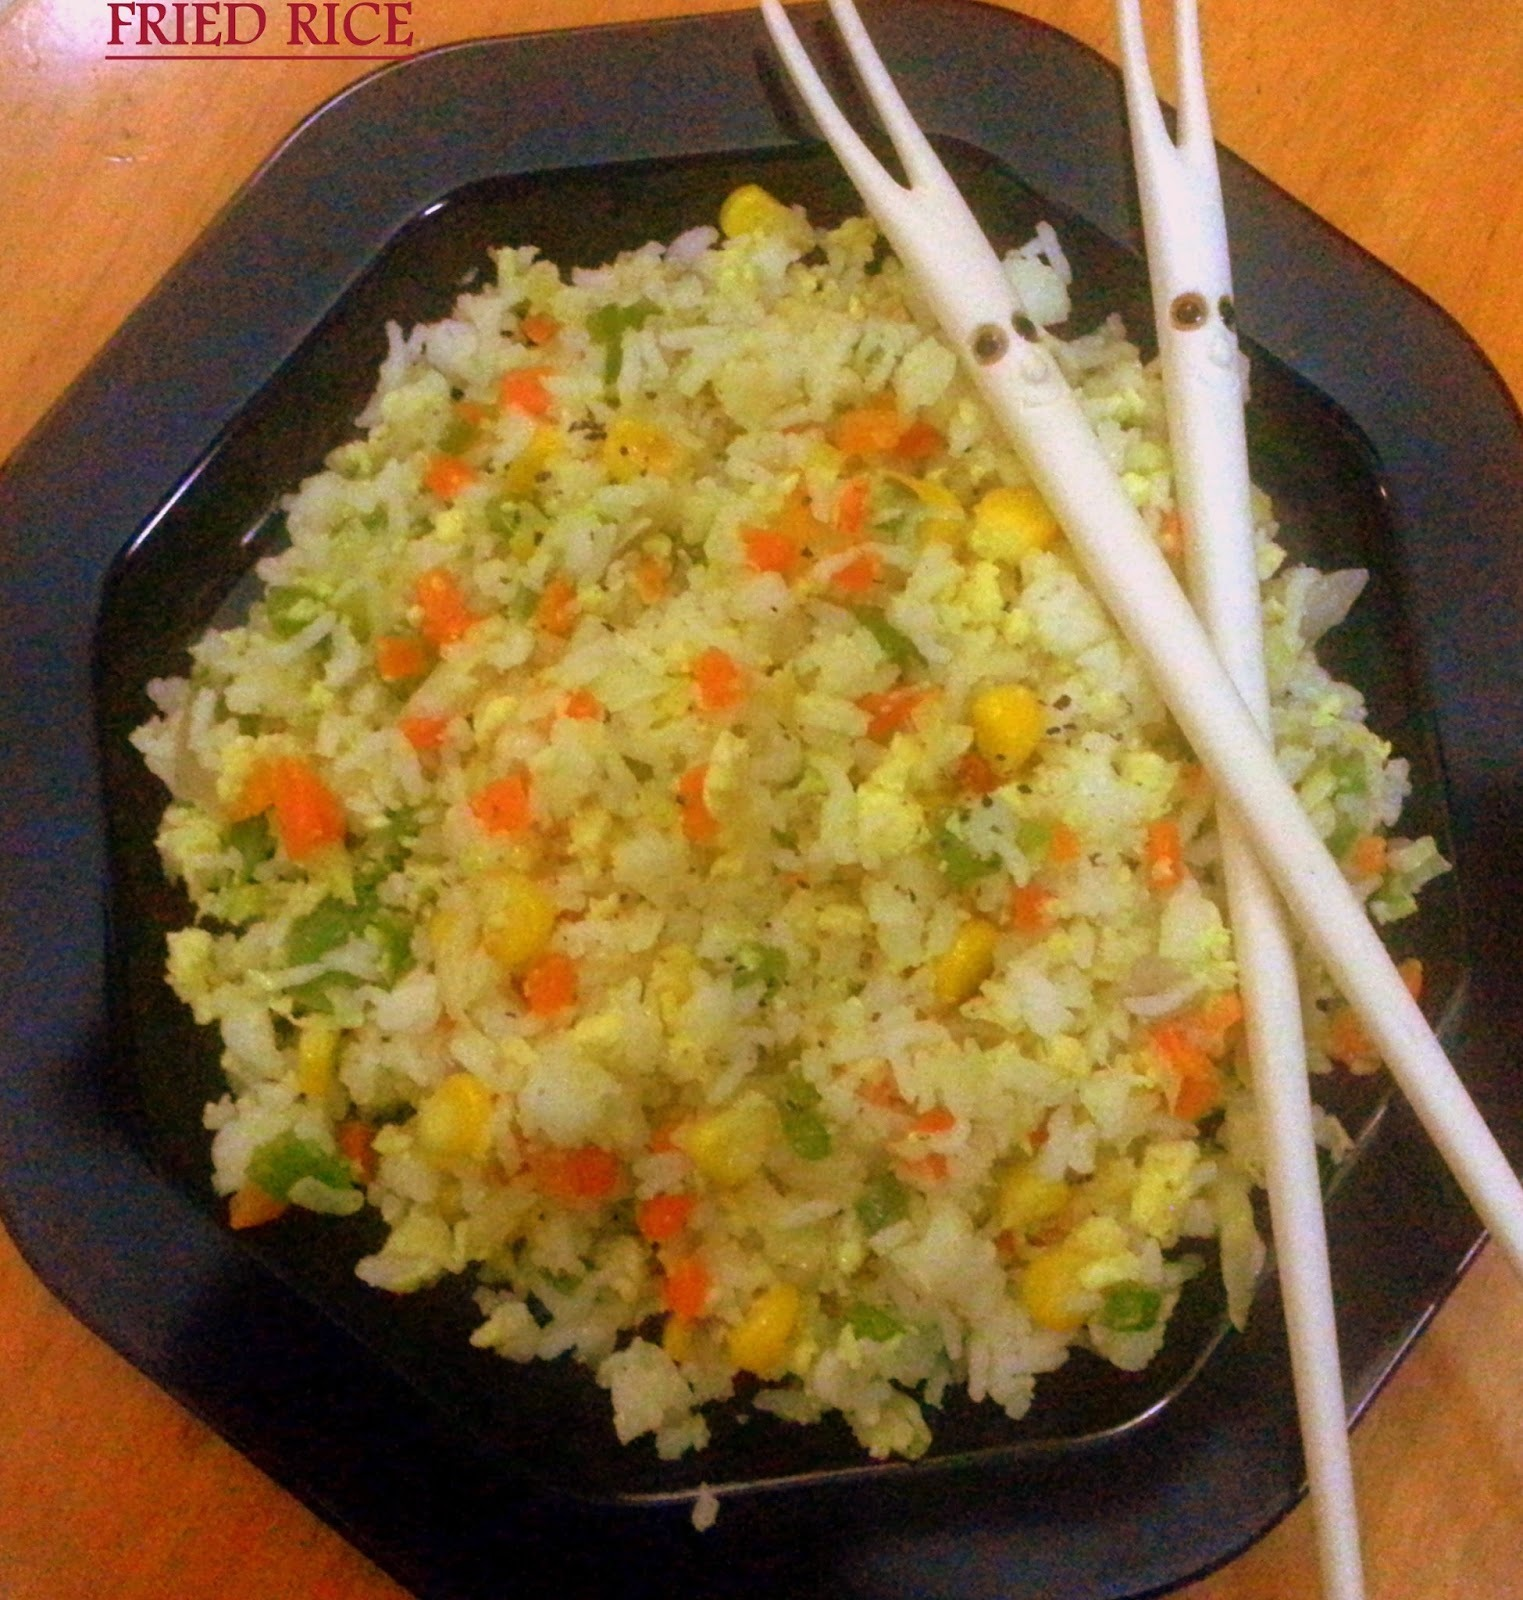 Fried rice in rice cooker